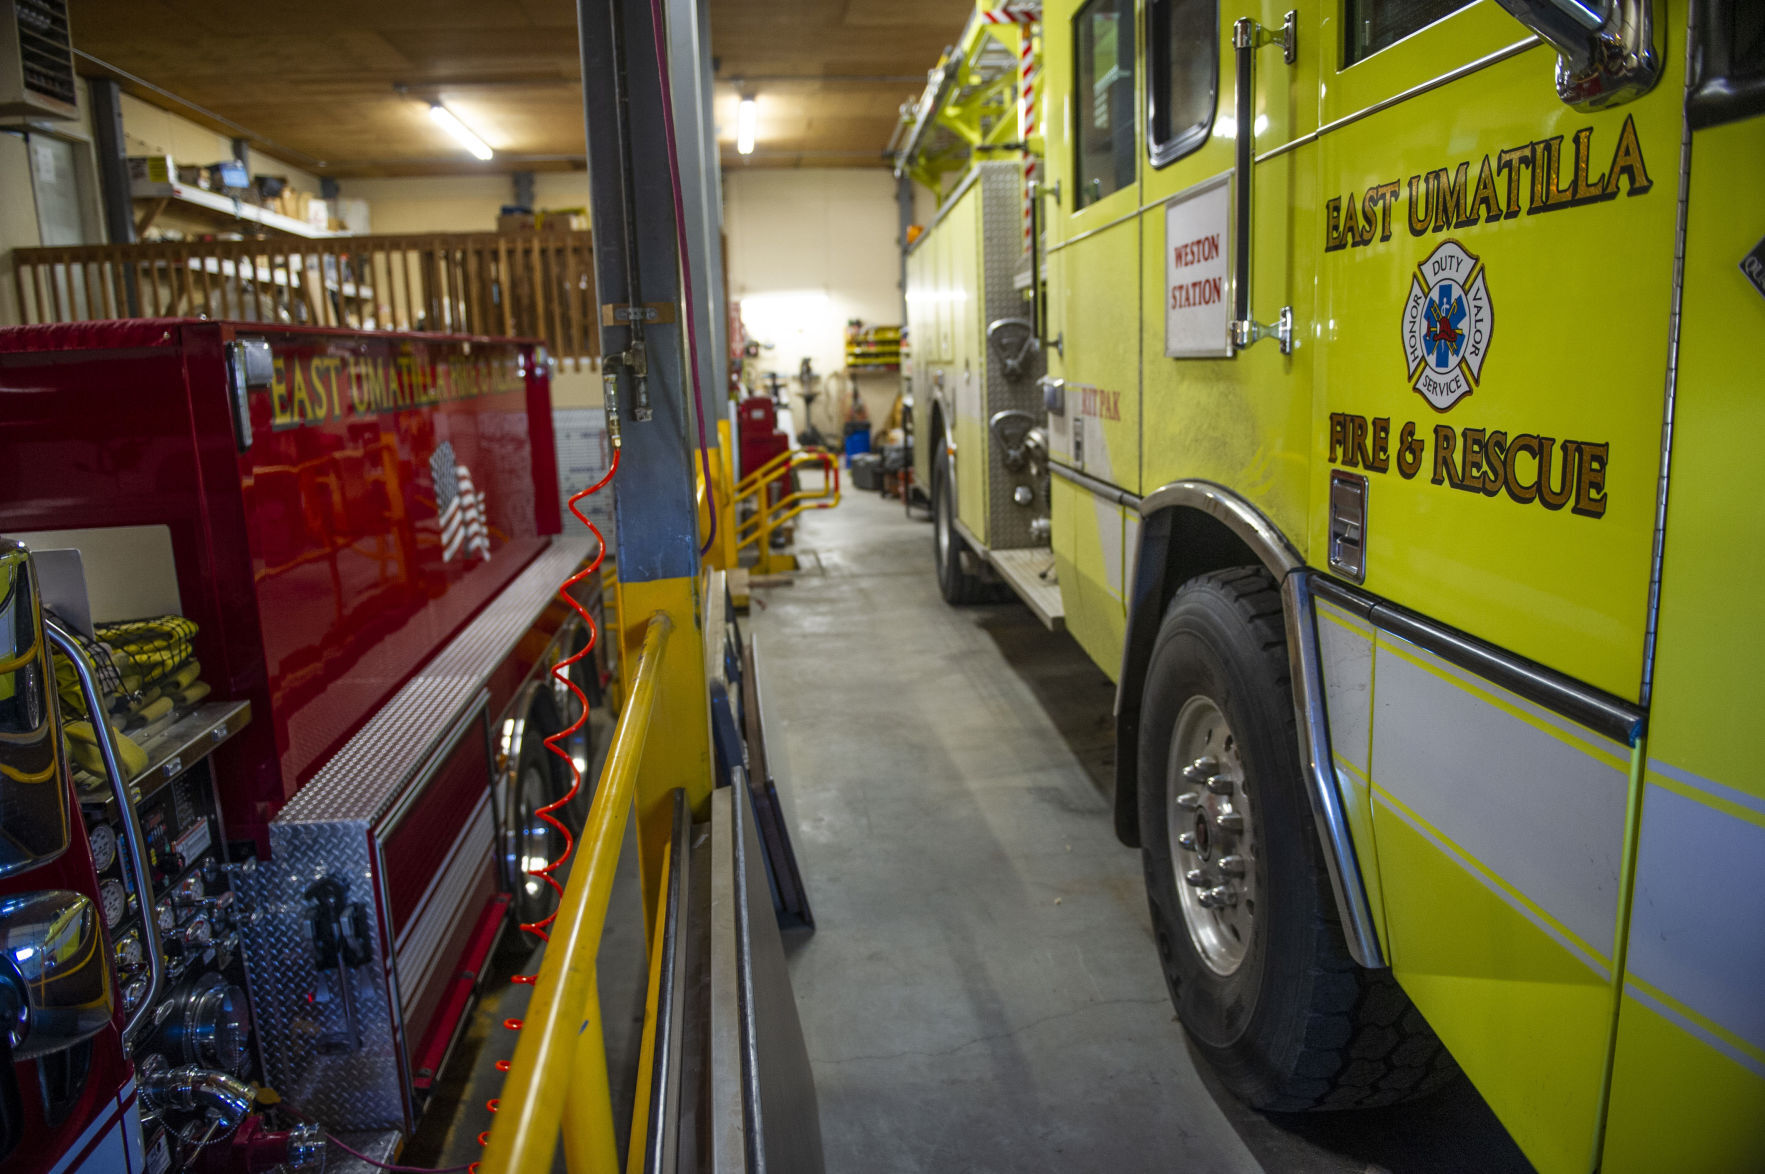 East Umatilla Fire & Rescue District in Weston intends to ask state lawmakers for a new station